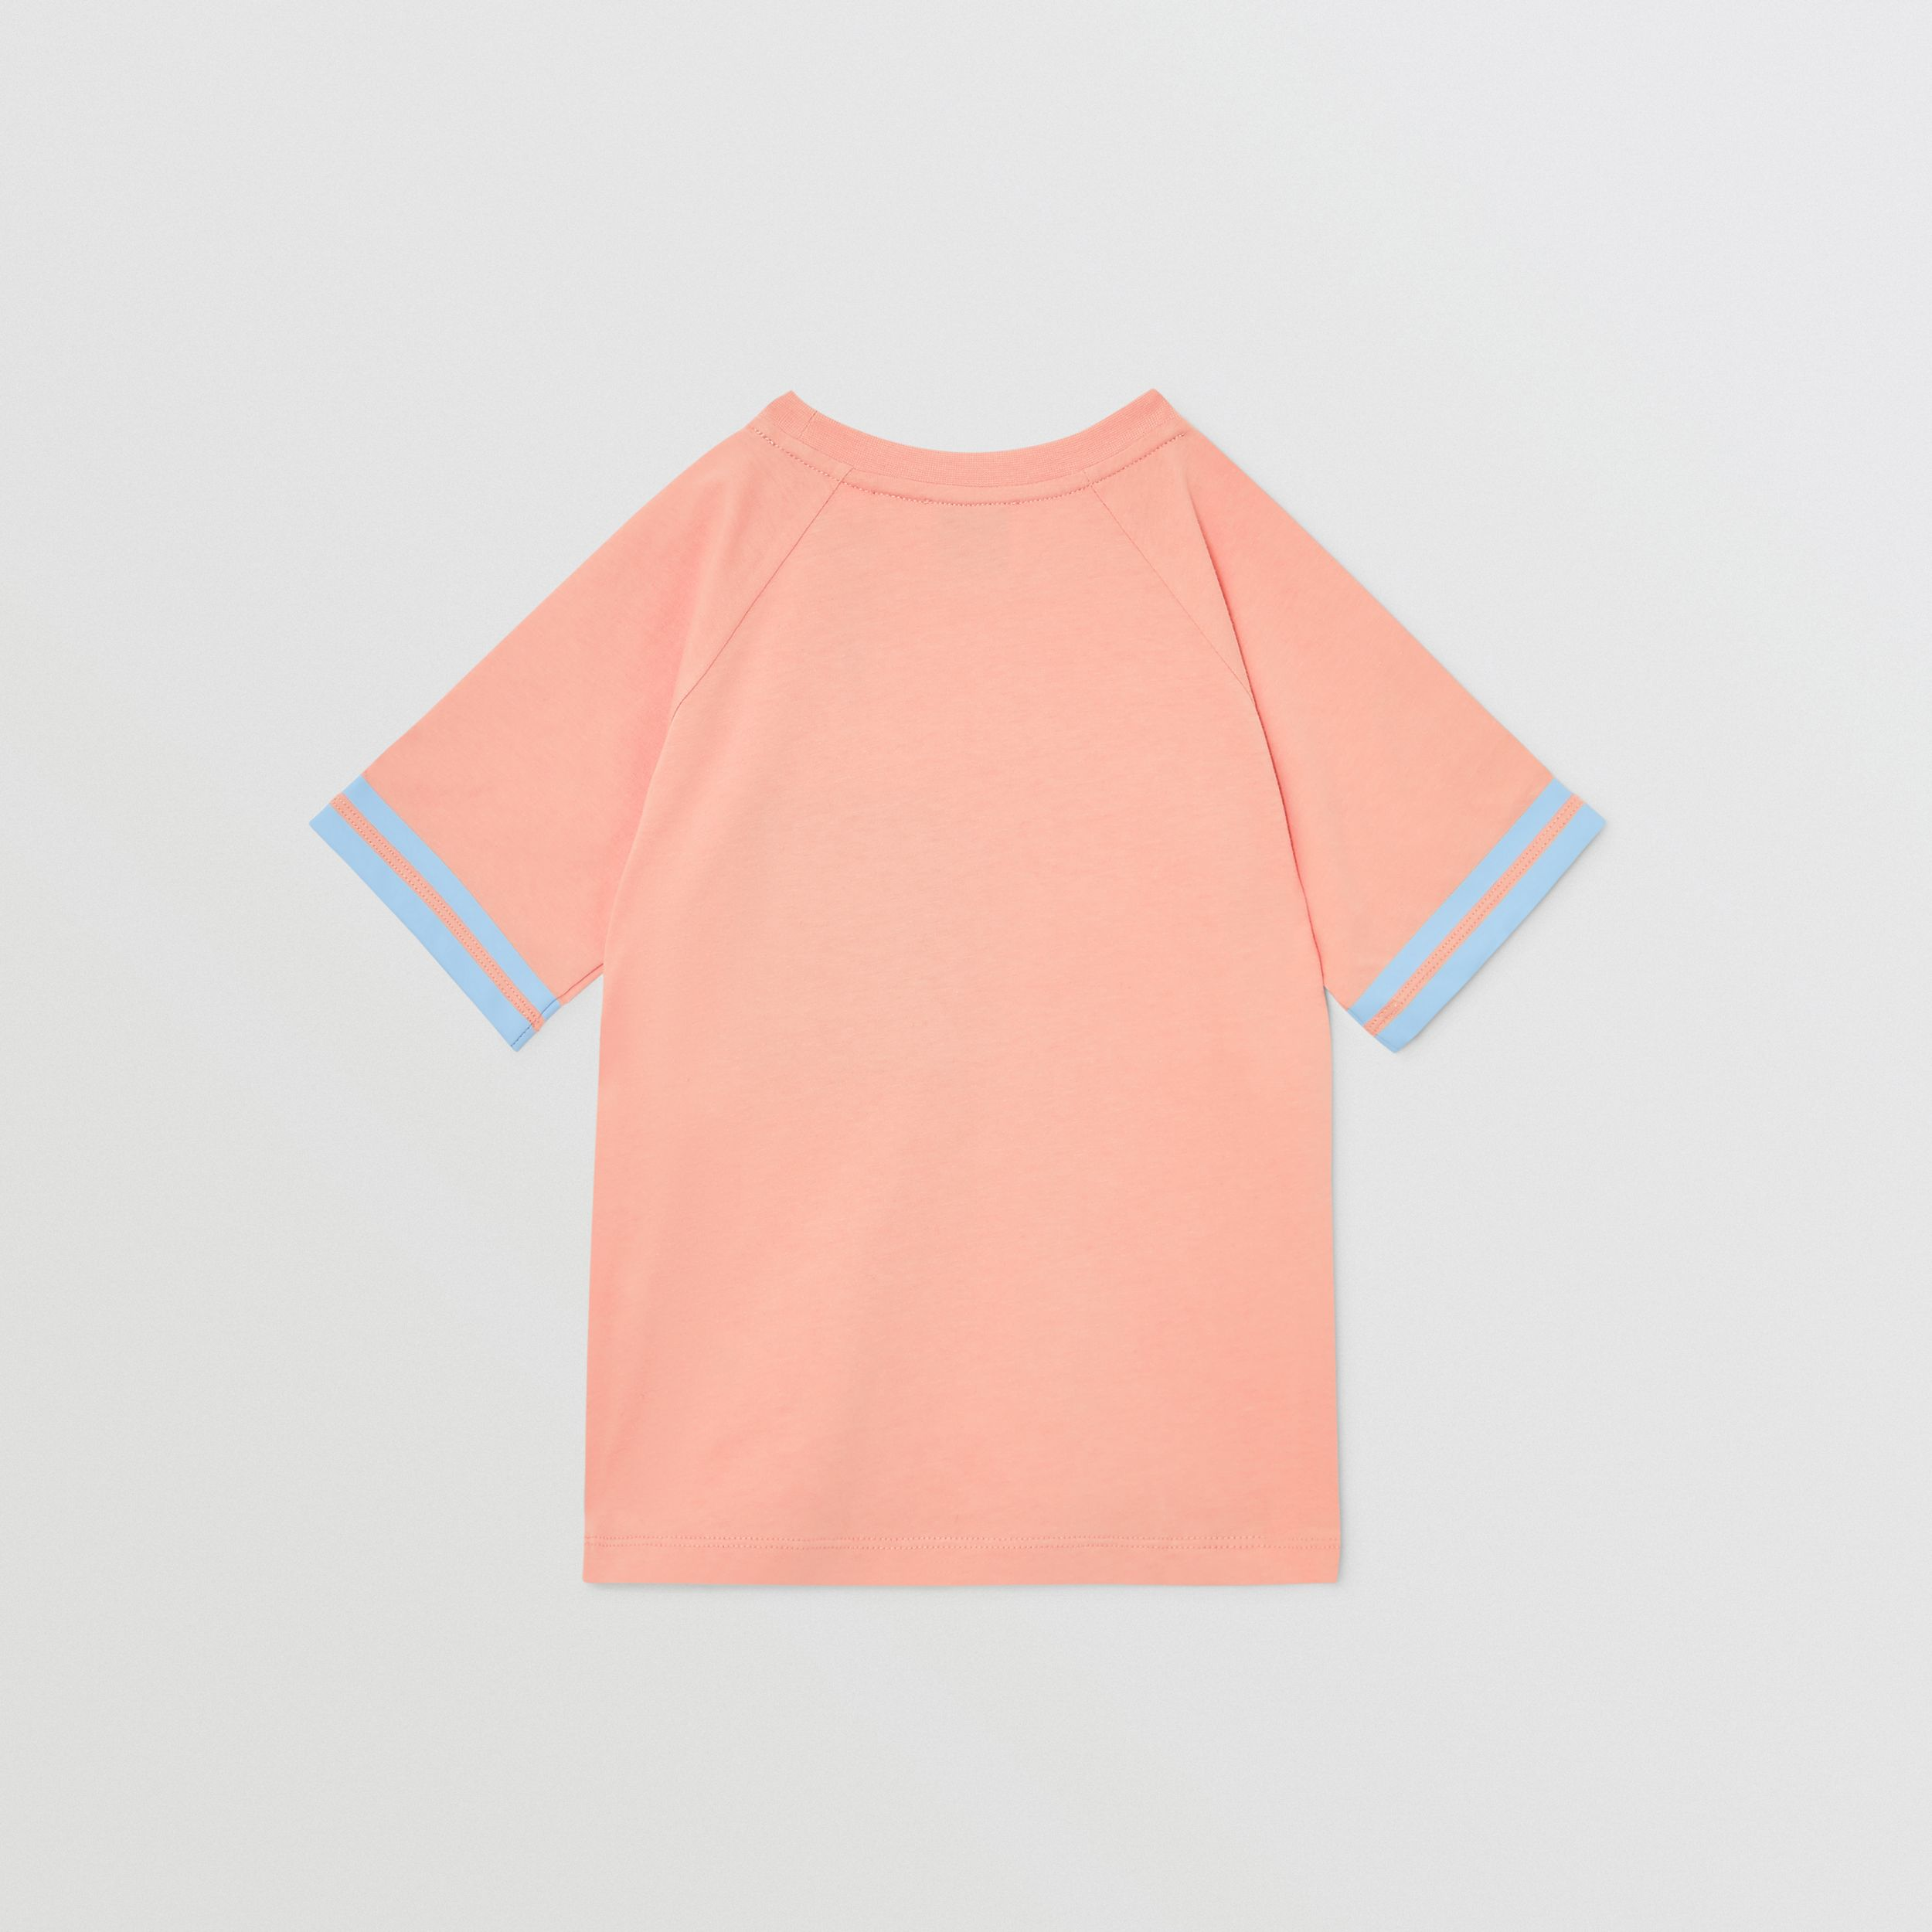 Tape Detail Location Print Cotton T-shirt in Peach | Burberry - 4